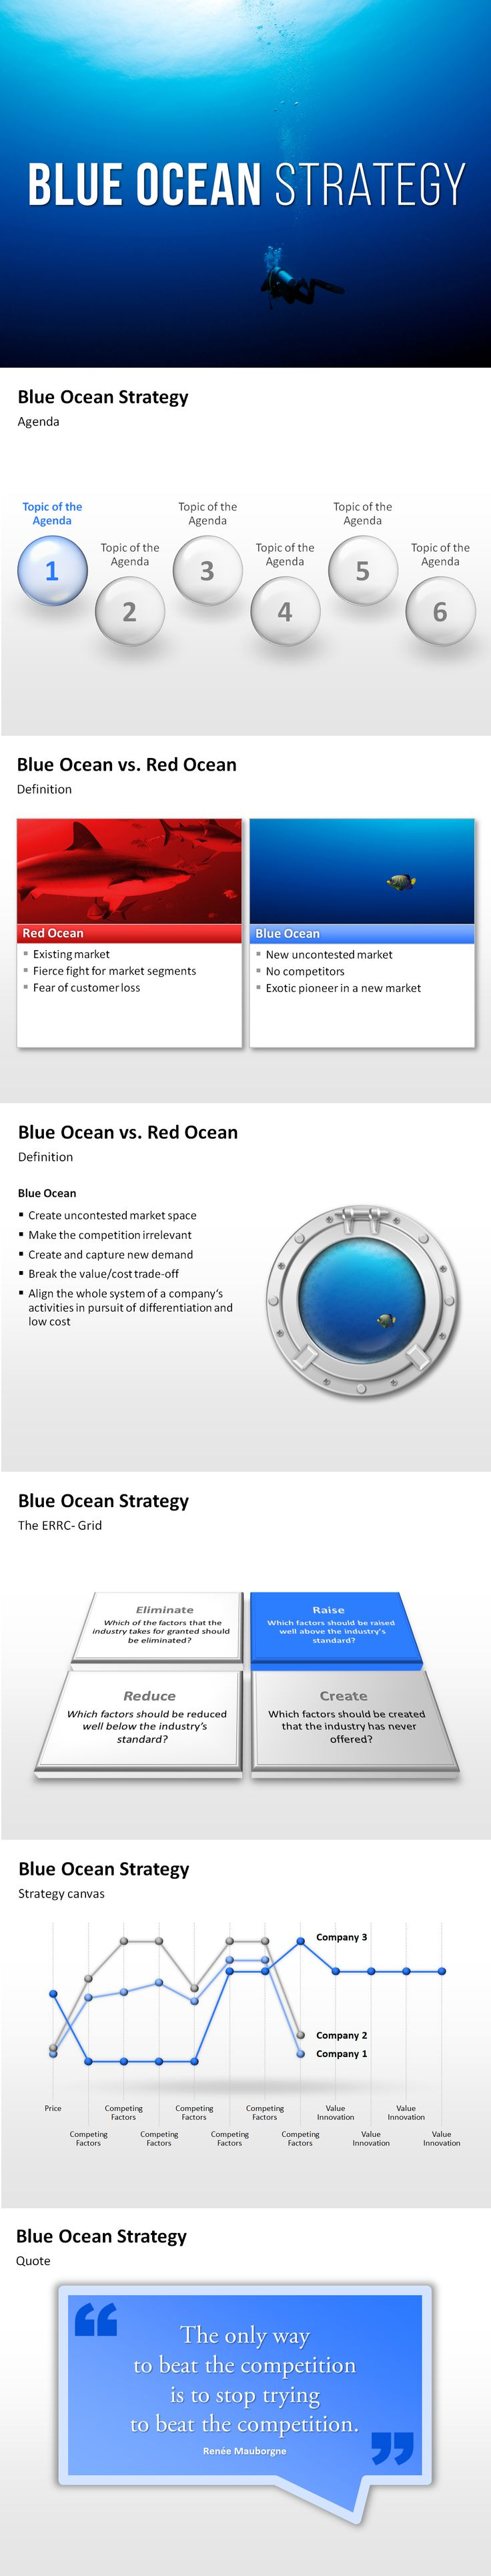 """Blue Ocean"" #Strategy #template for #PowerPoint for the professional, strategic planning of your company."